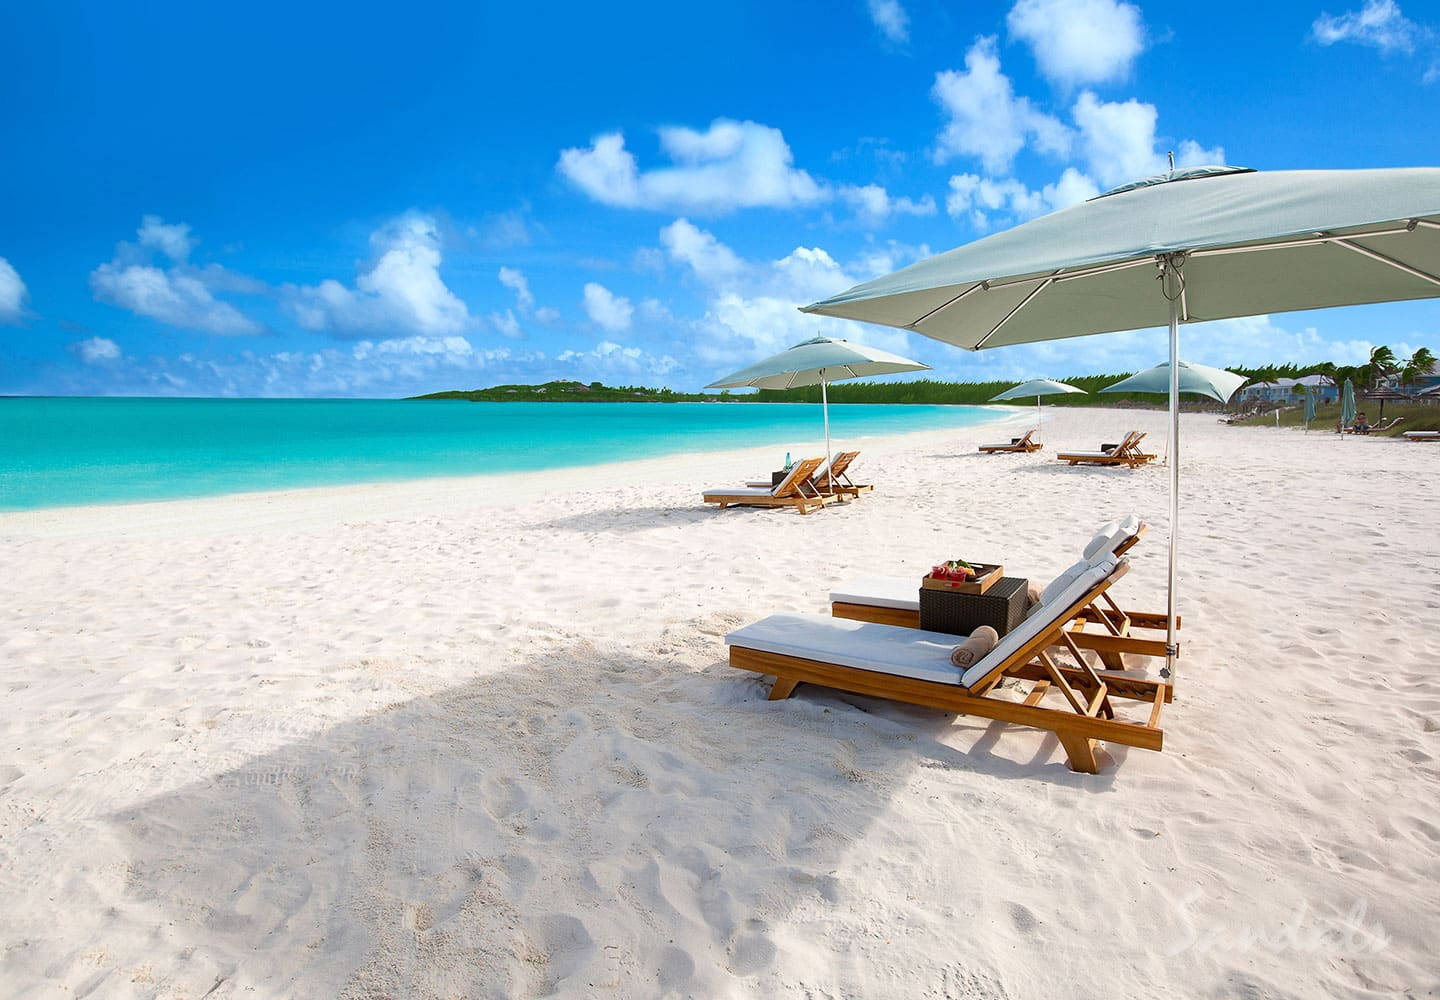 beach and blue water in front of the Sandals Emerald Bay Golf and Spa tennis resort, Great Exuma, Bahamas, perfect for all inclusive vacations adults only